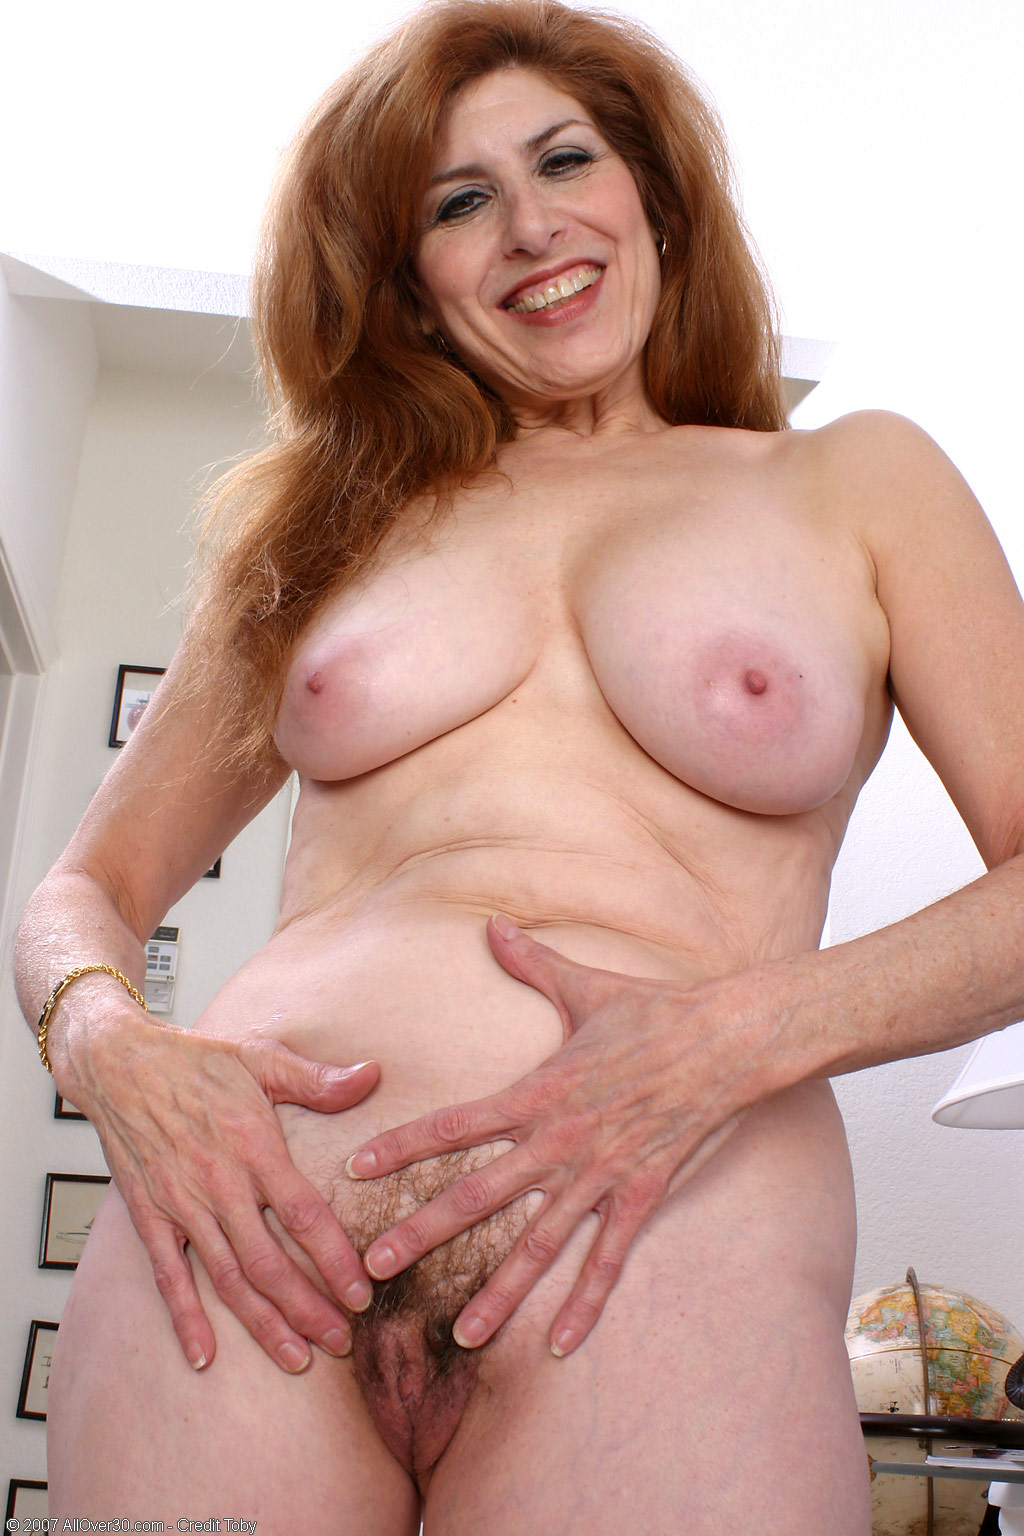 Women mature topless older